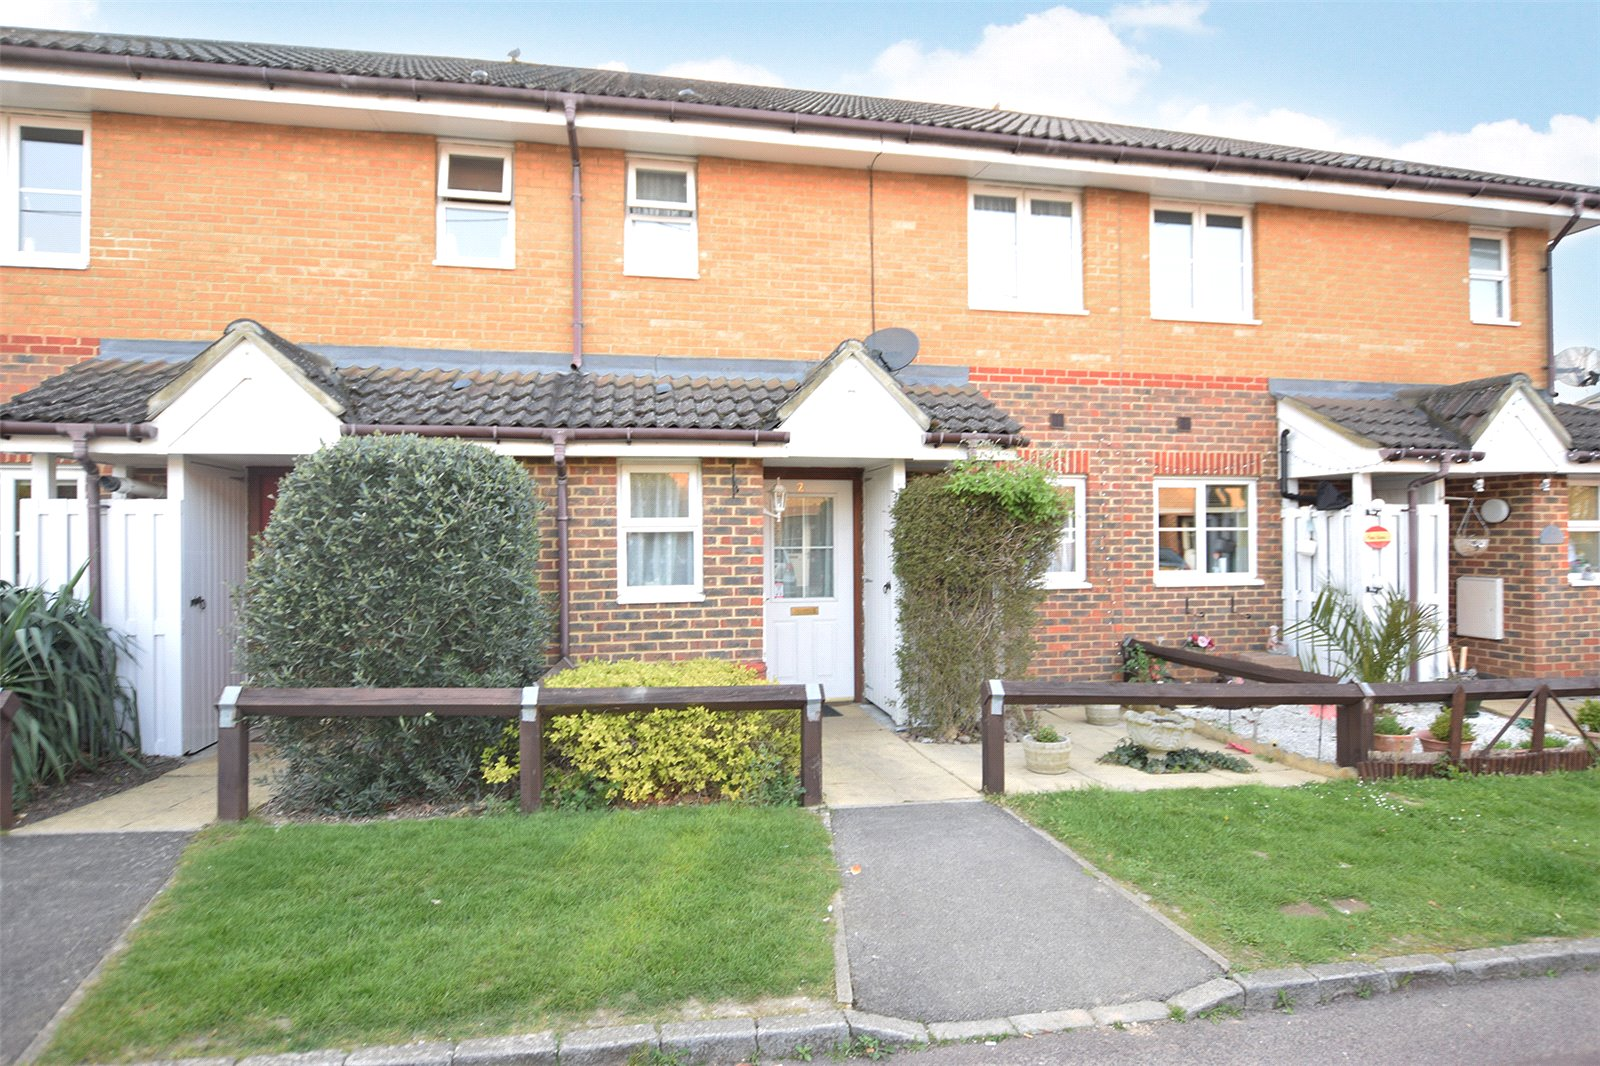 3 Bedrooms Terraced House for sale in Lilac Cottages, Pollardrow Avenue, Bracknell, Berkshire, RG42